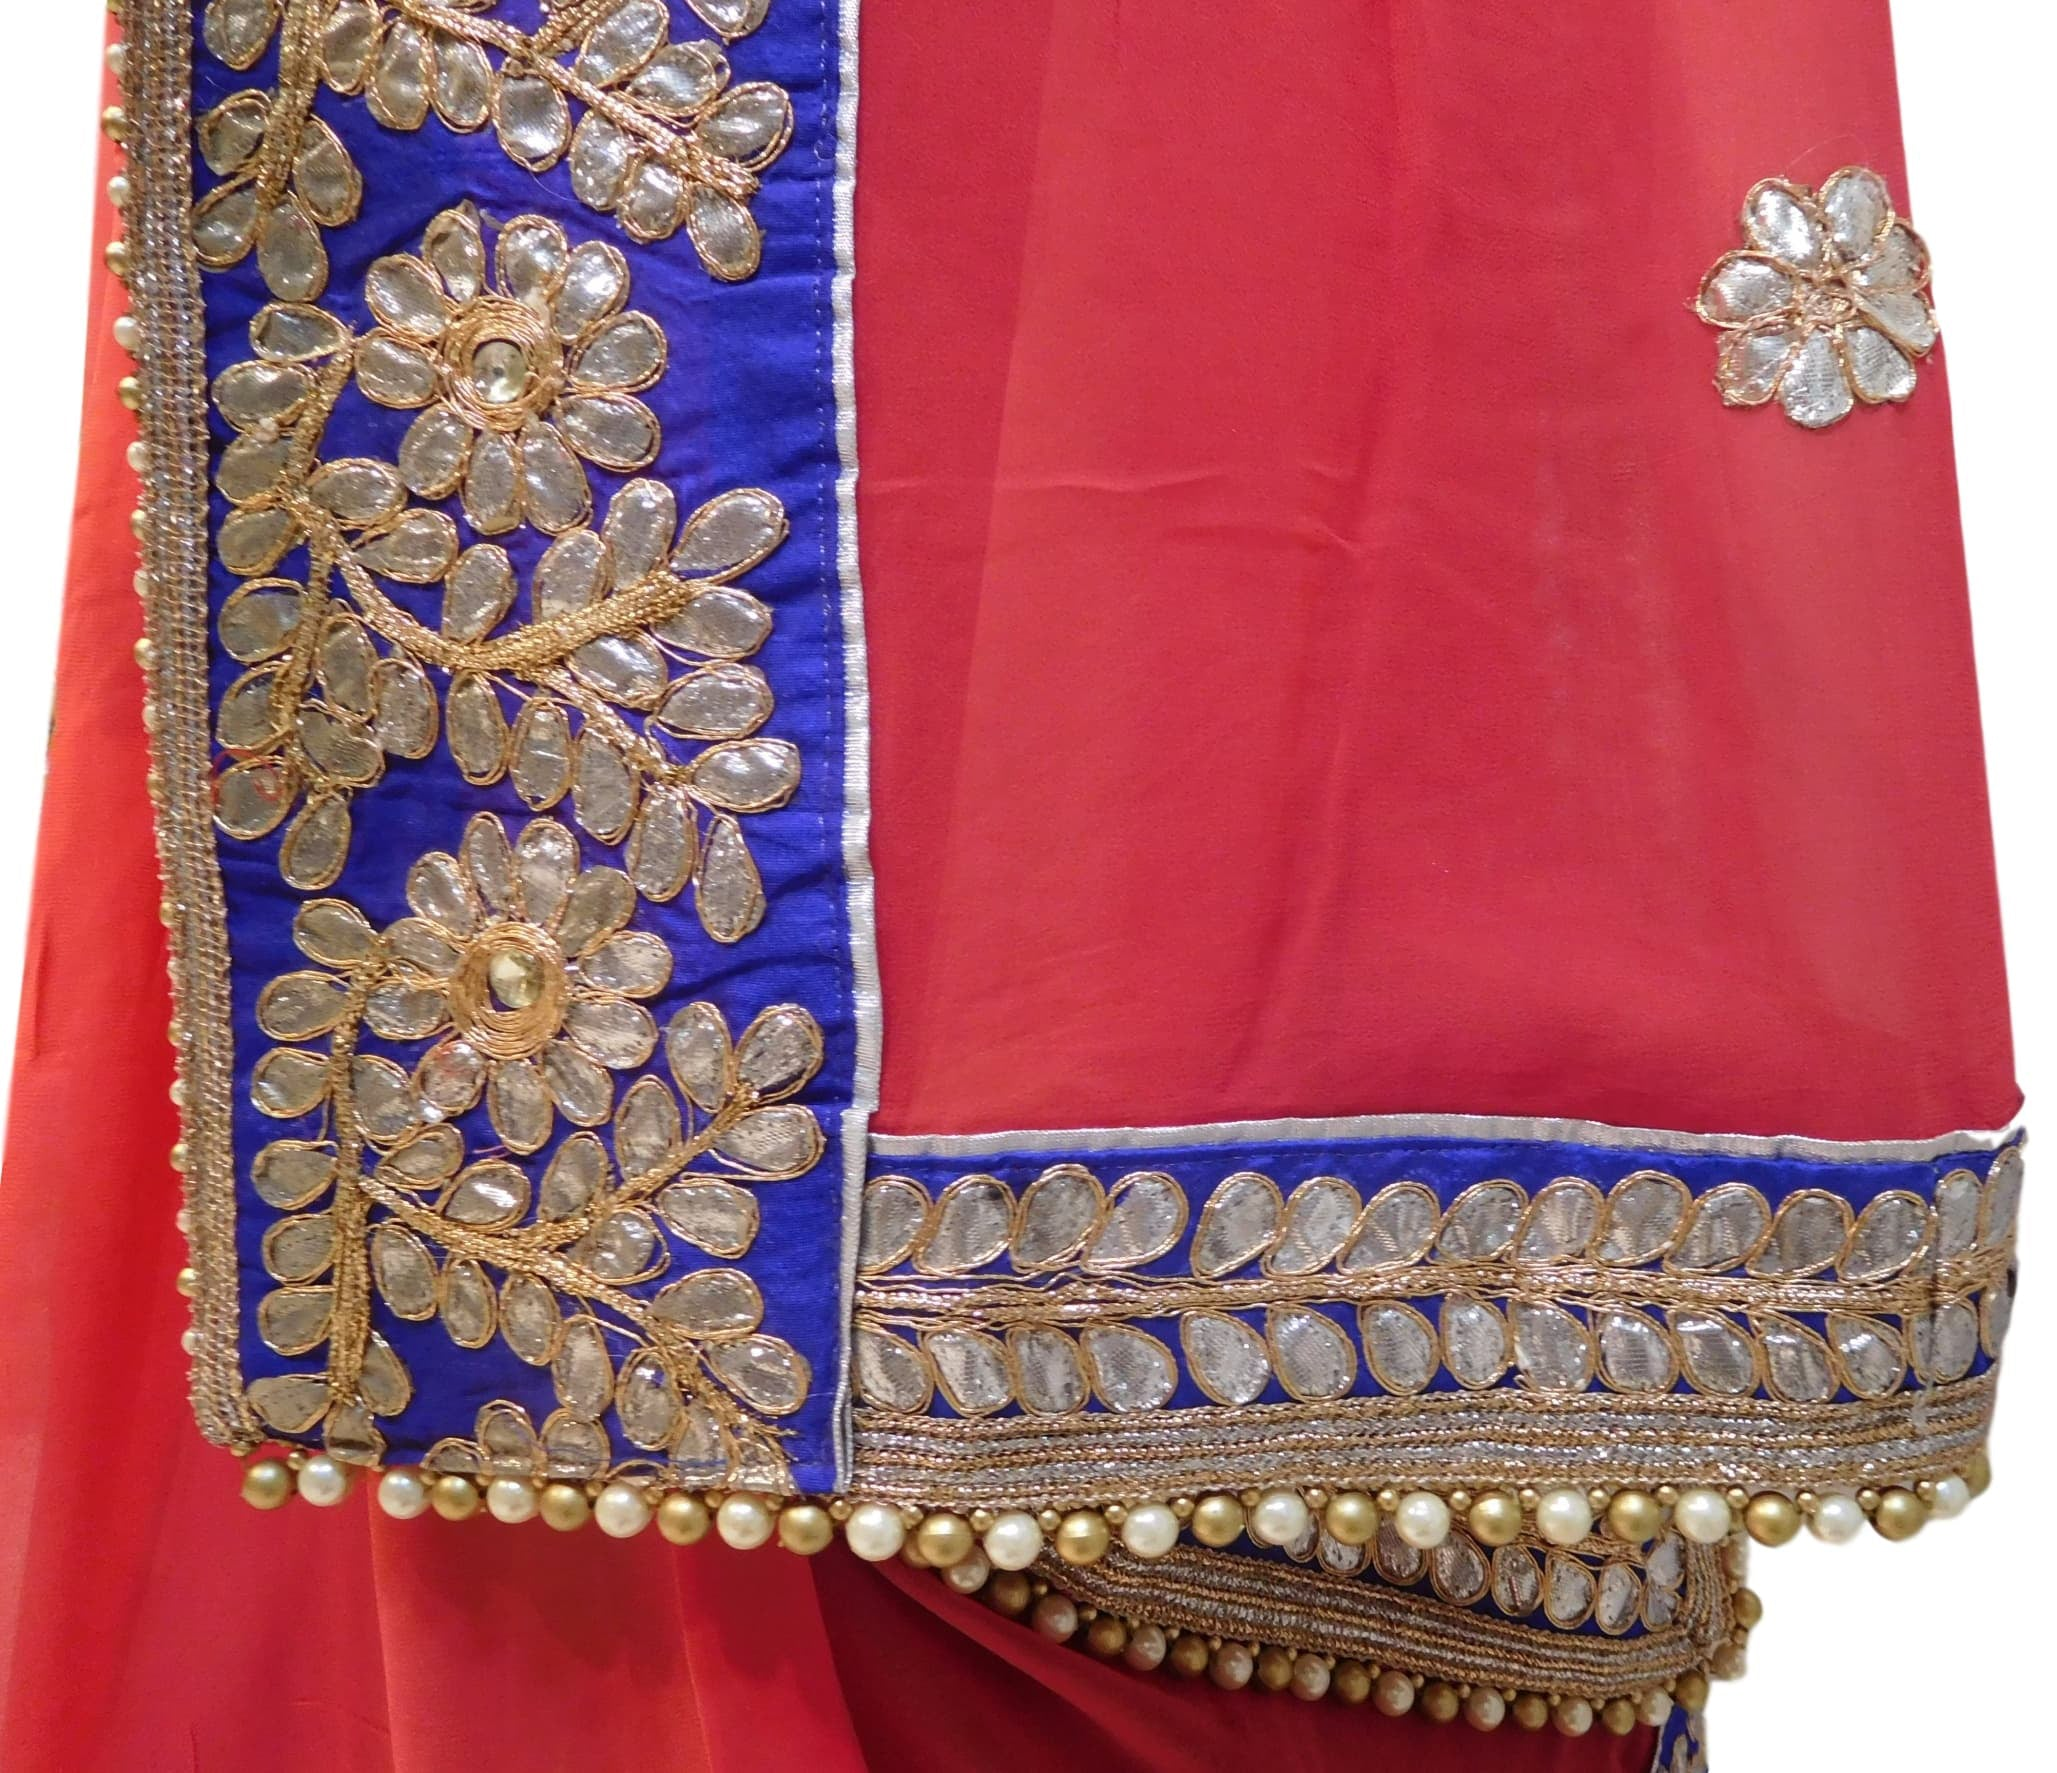 Bollywood Style Gajari Gota Saree With Blue Border With Pearl Lace Sari